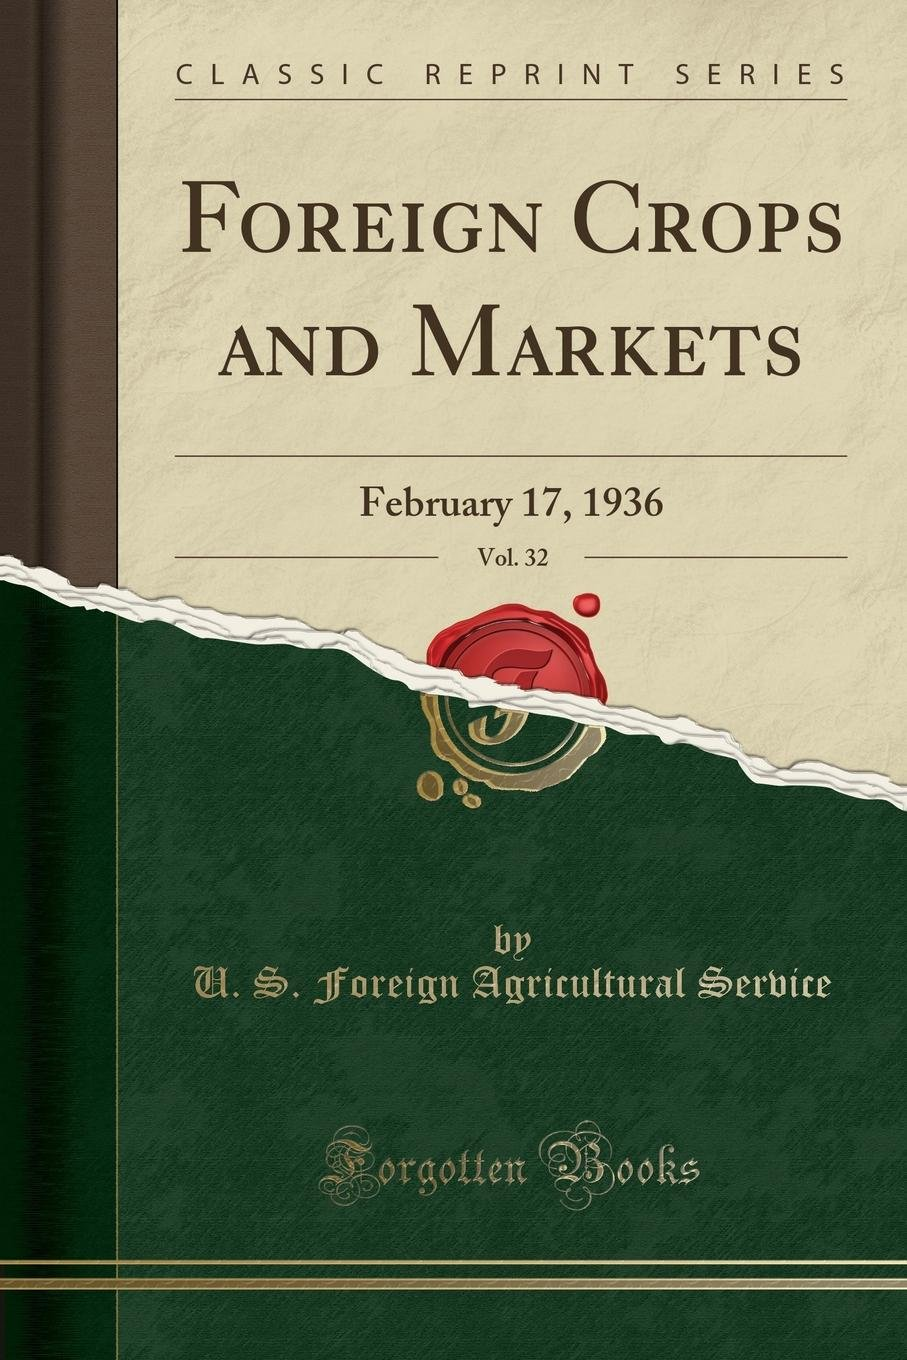 Foreign Crops and Markets, Vol. 32: February 17, 1936 (Classic Reprint) ebook